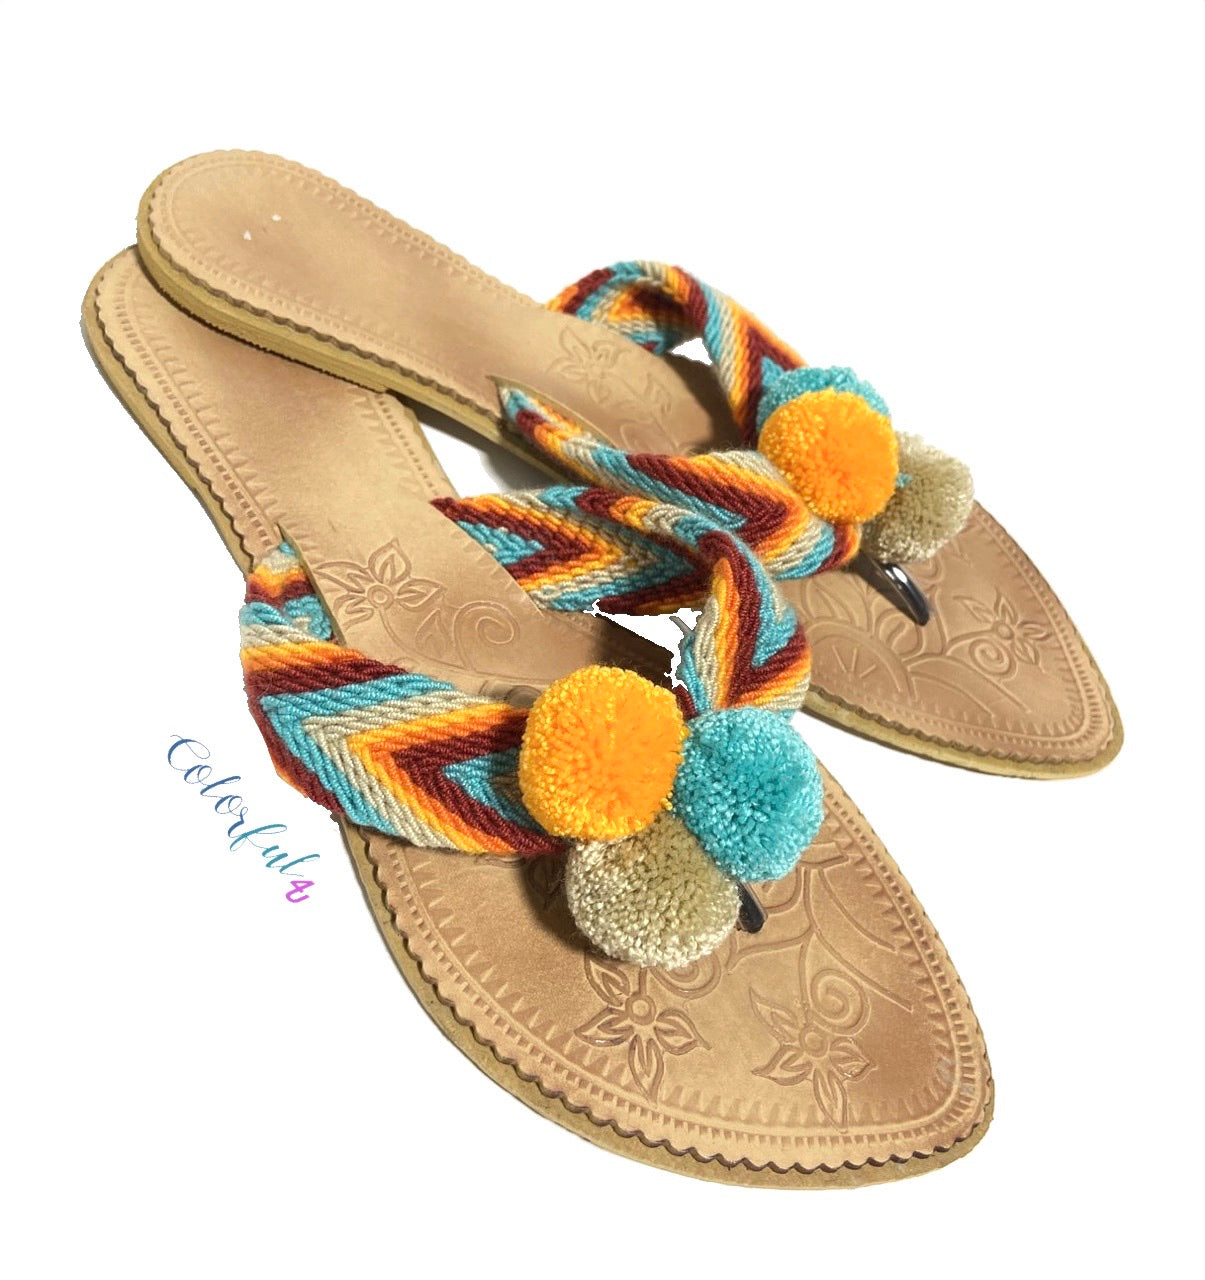 Desert Sunset Beach Sandals - Cute Pompom Sandals